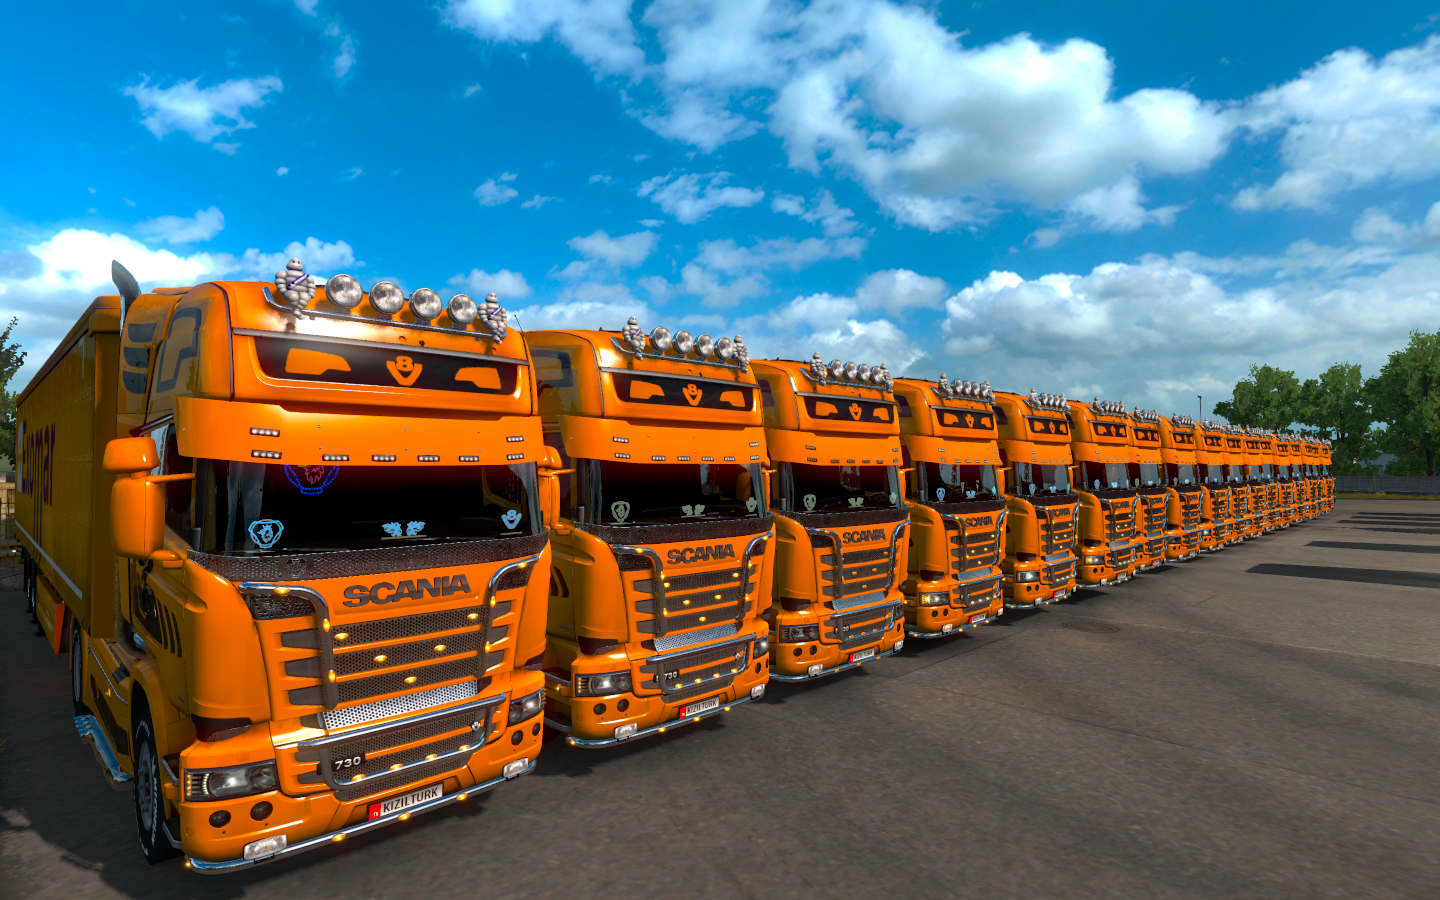 ets2_20190612_205240_00.png